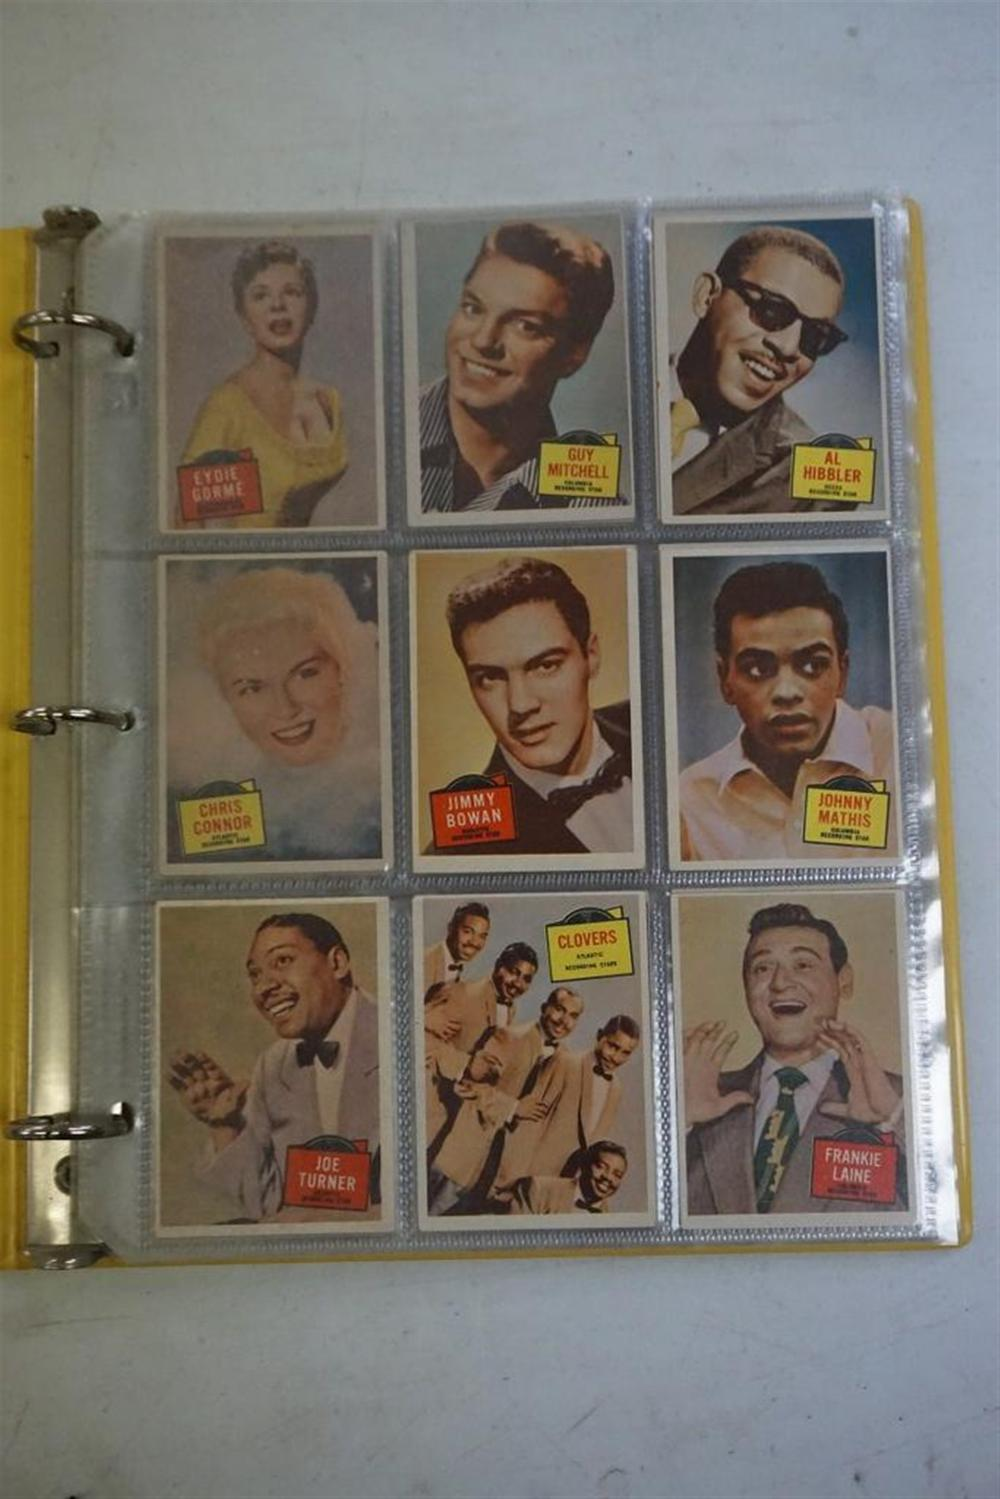 57 TOPPS HIT STARS CARDS, IN VERY NICE CONDITION, INCLUDING MANY STARS.